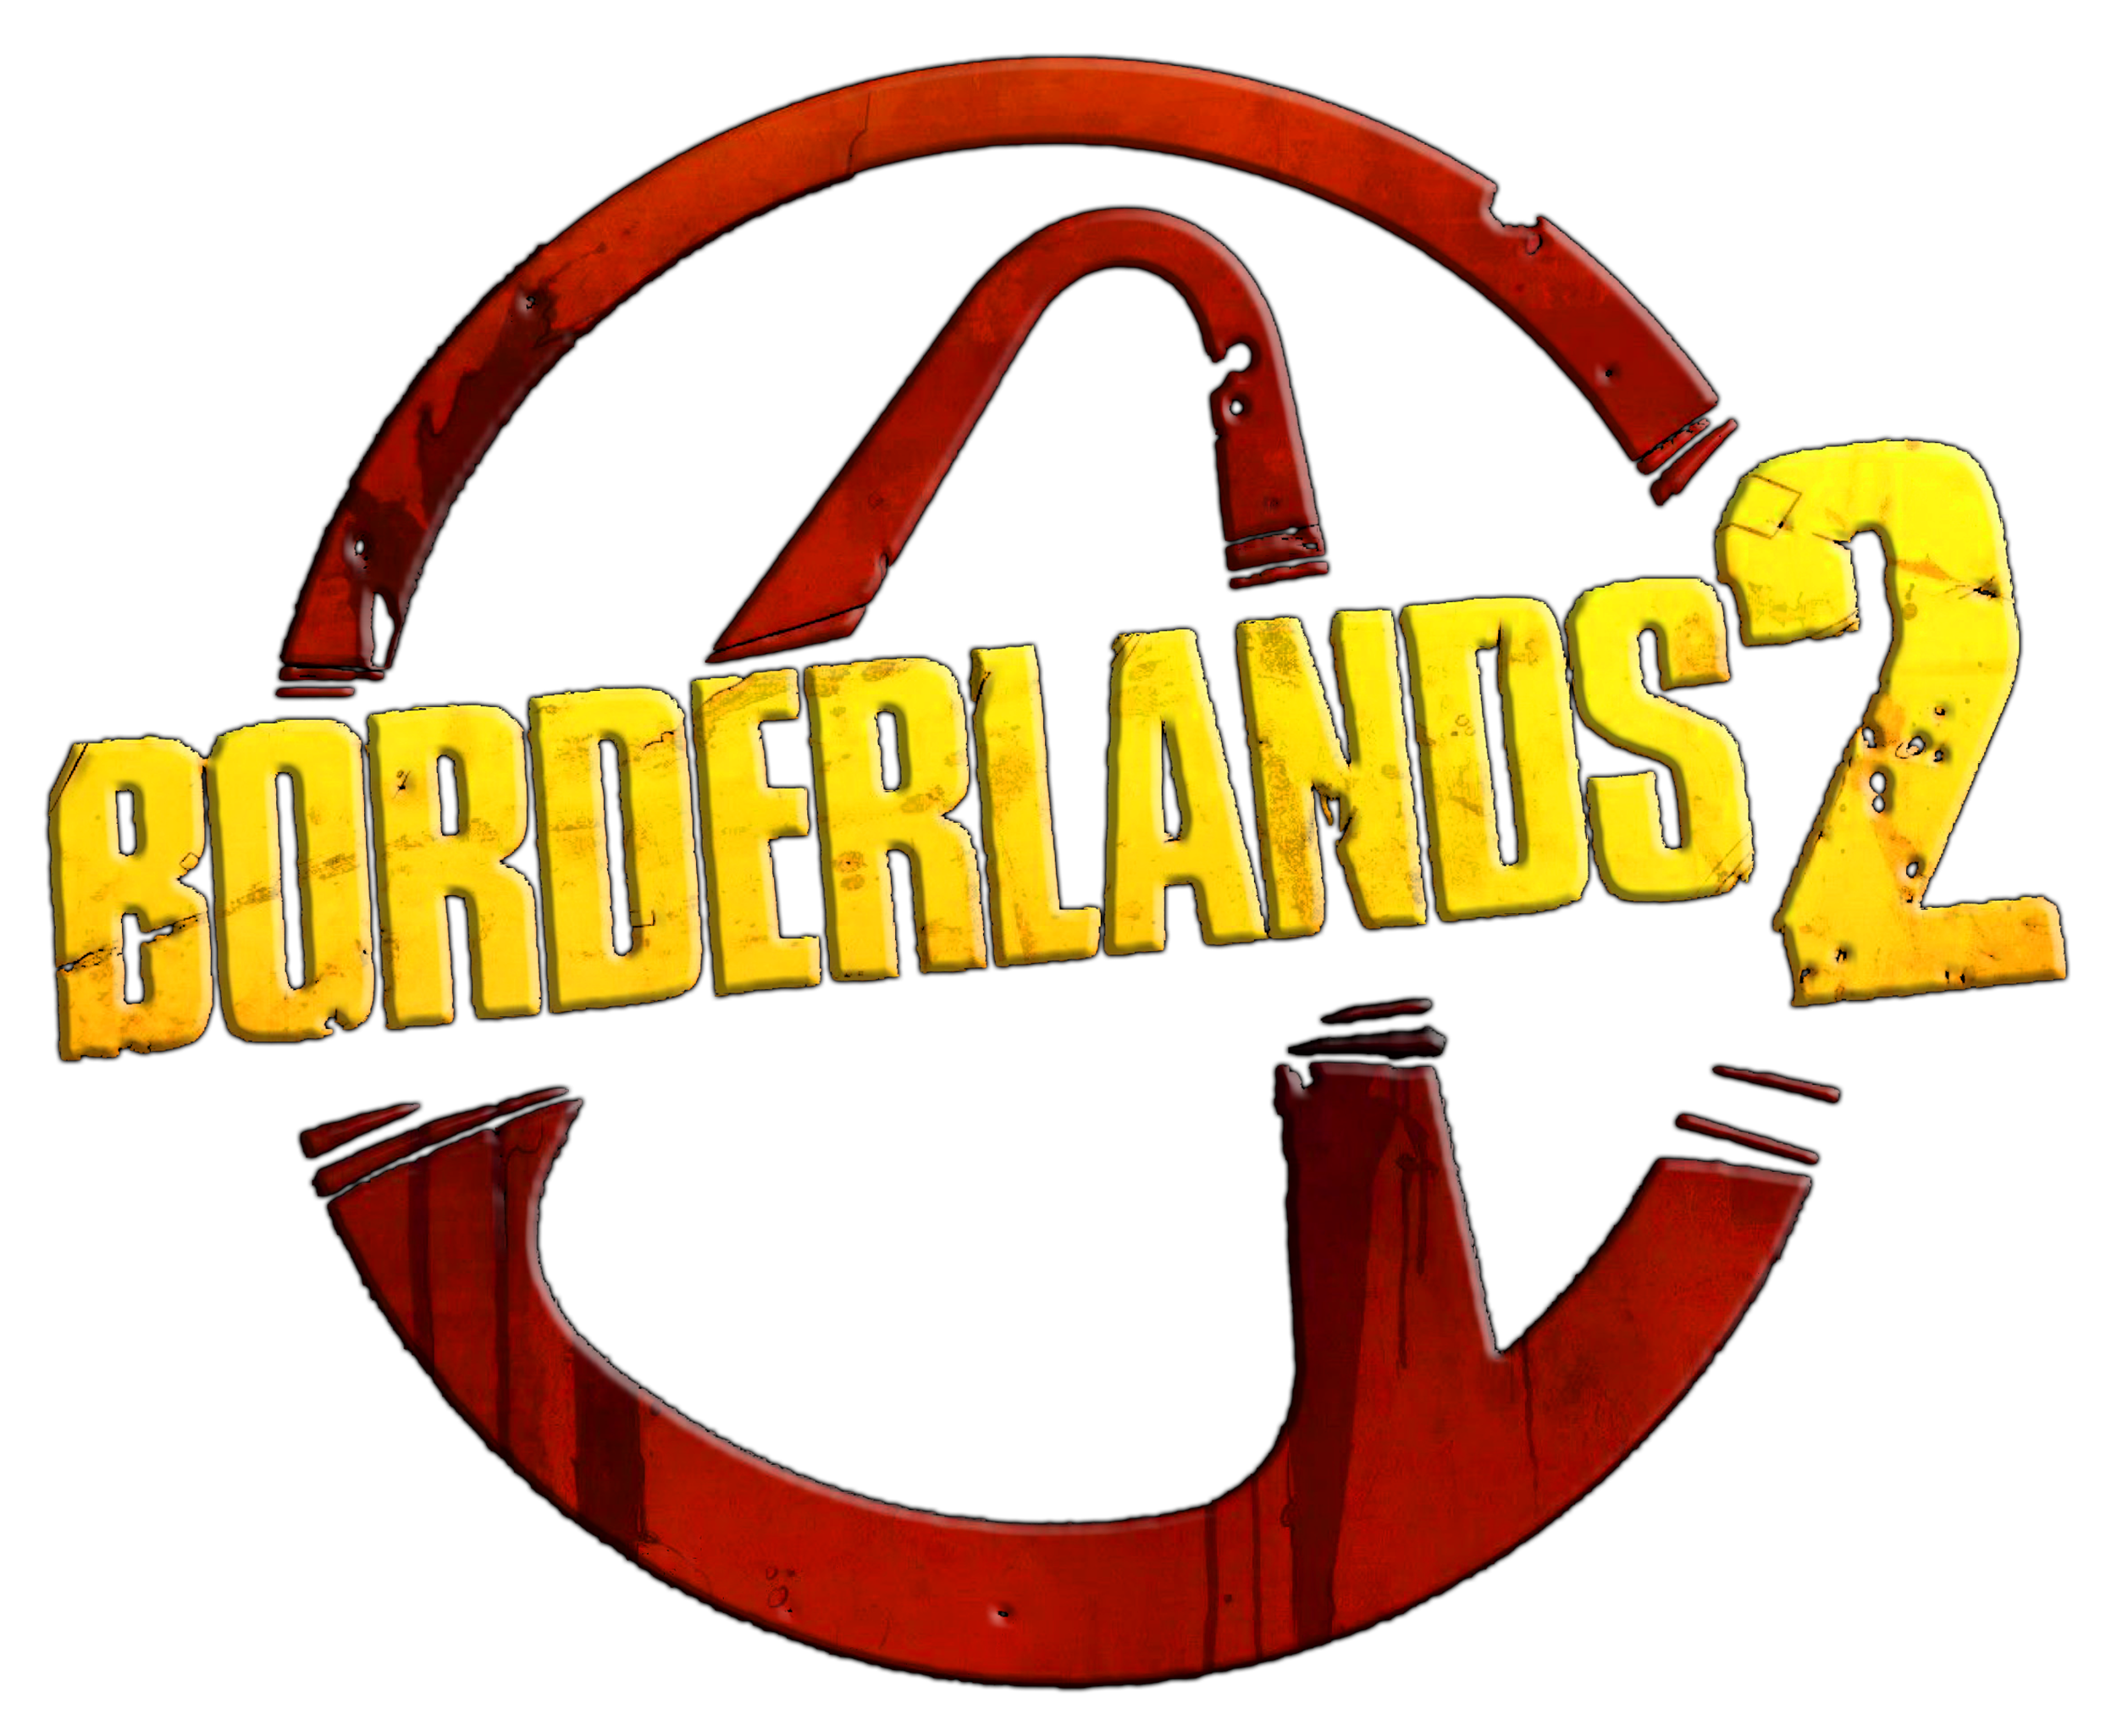 Borderlands 2 Logo by llexandro on DeviantArt